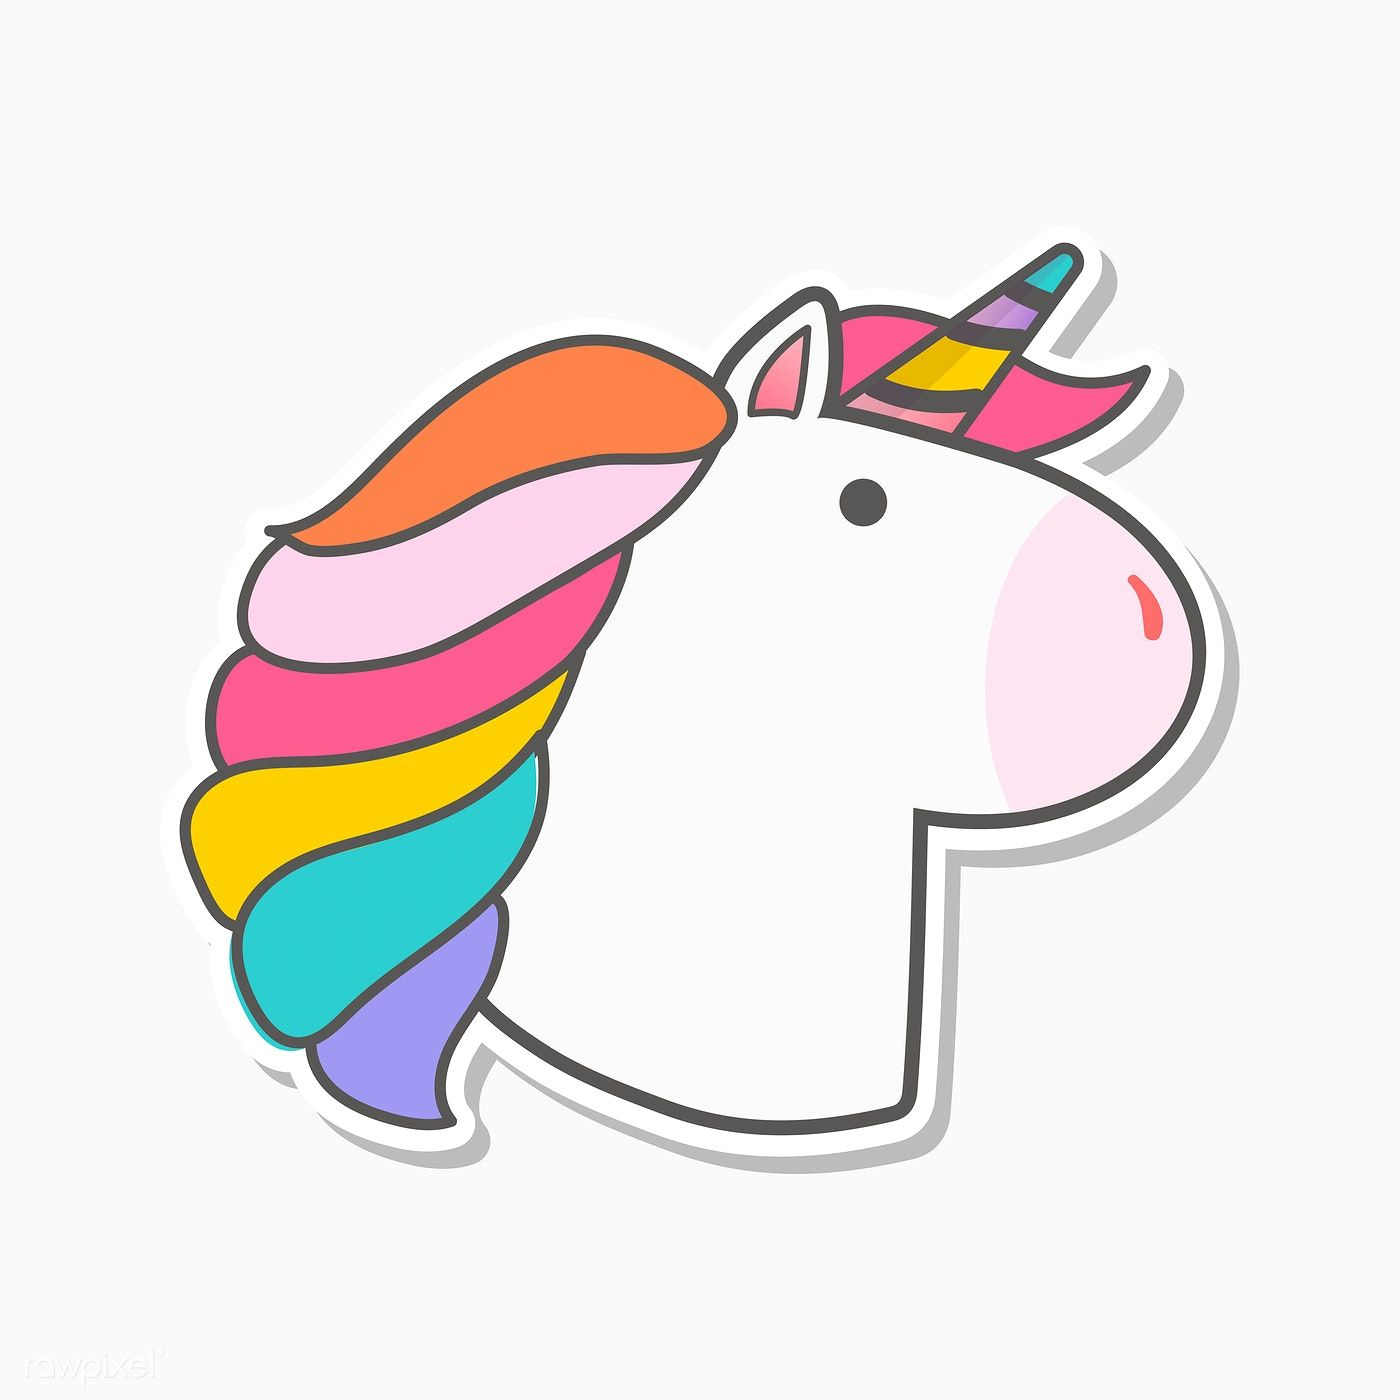 Unicorn Stickers By Jenny Gonzalez On Rawpixel Magical Rainbow